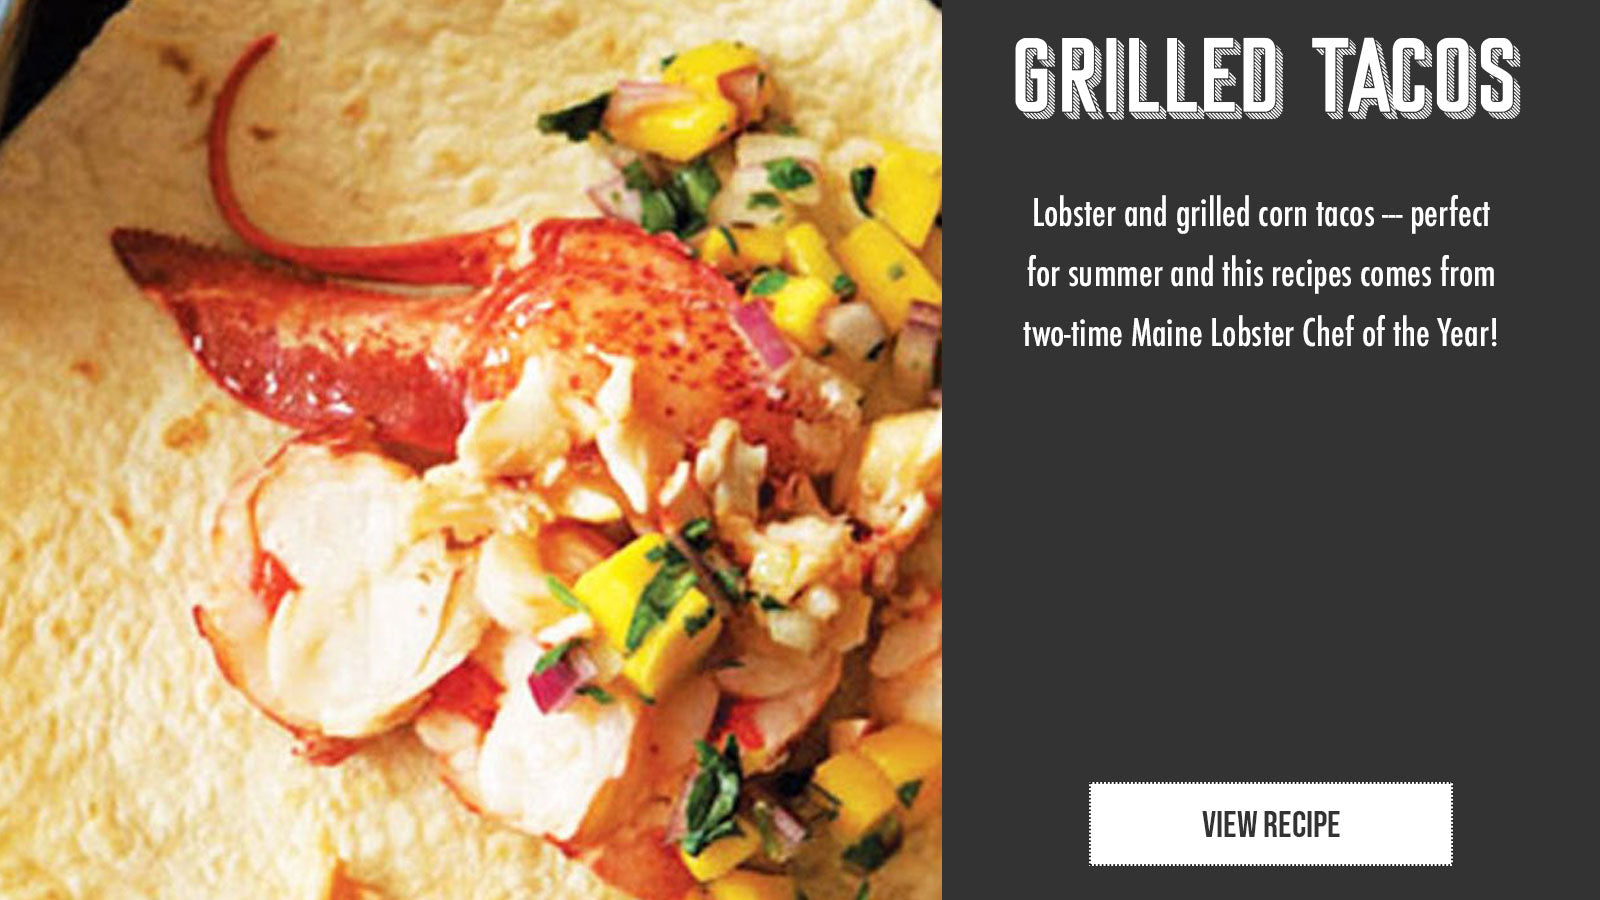 Grilled lobster tacos